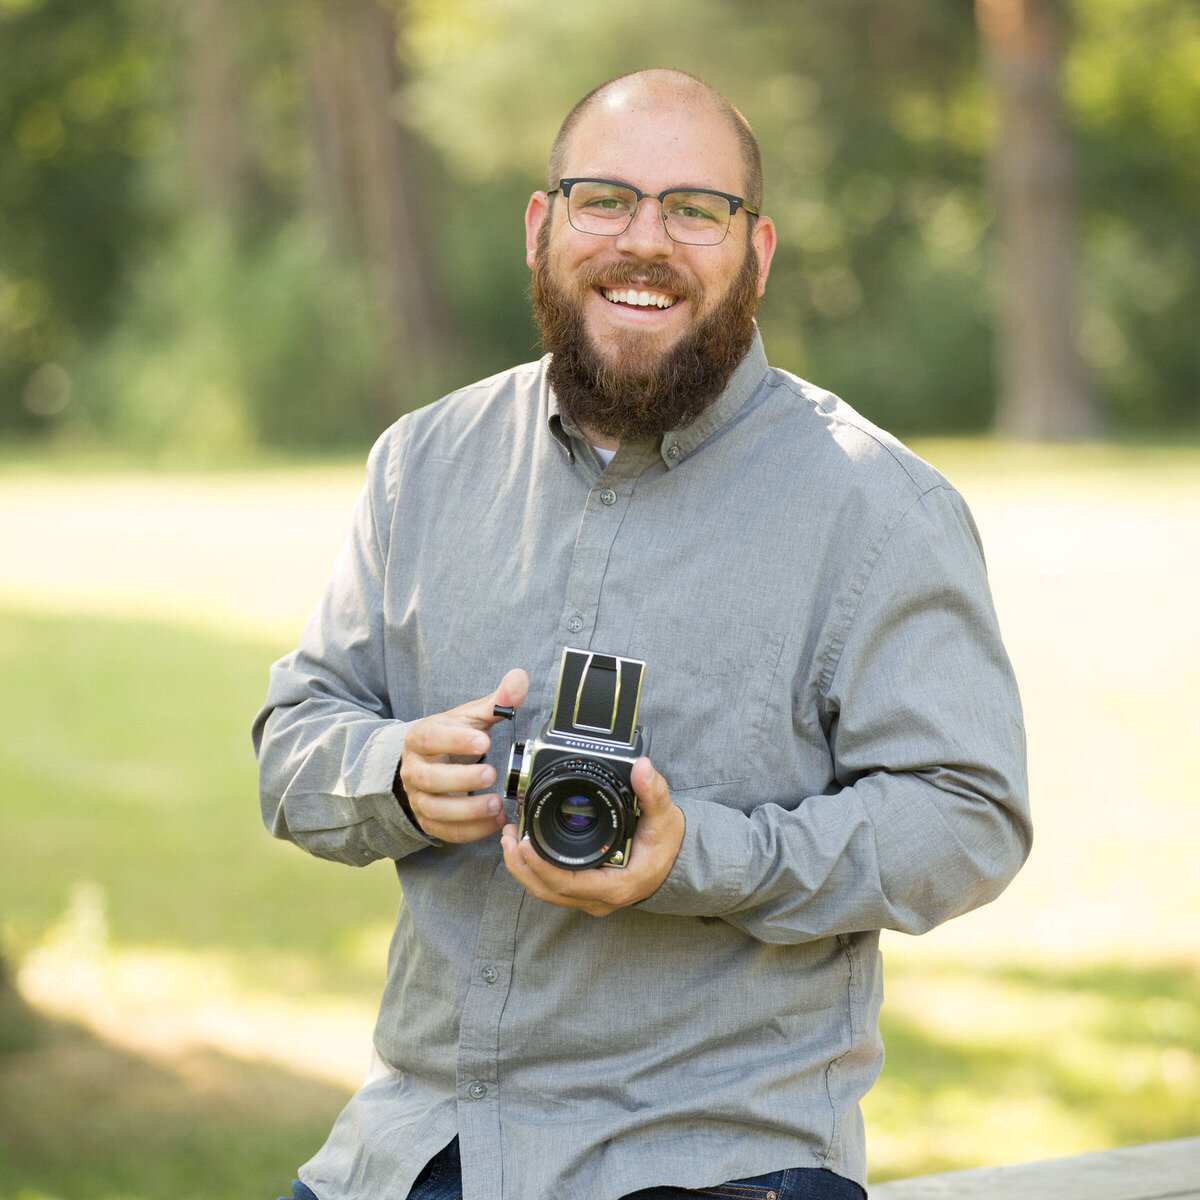 Bryan Caporicci, photographer and CEO of Sprout Studio